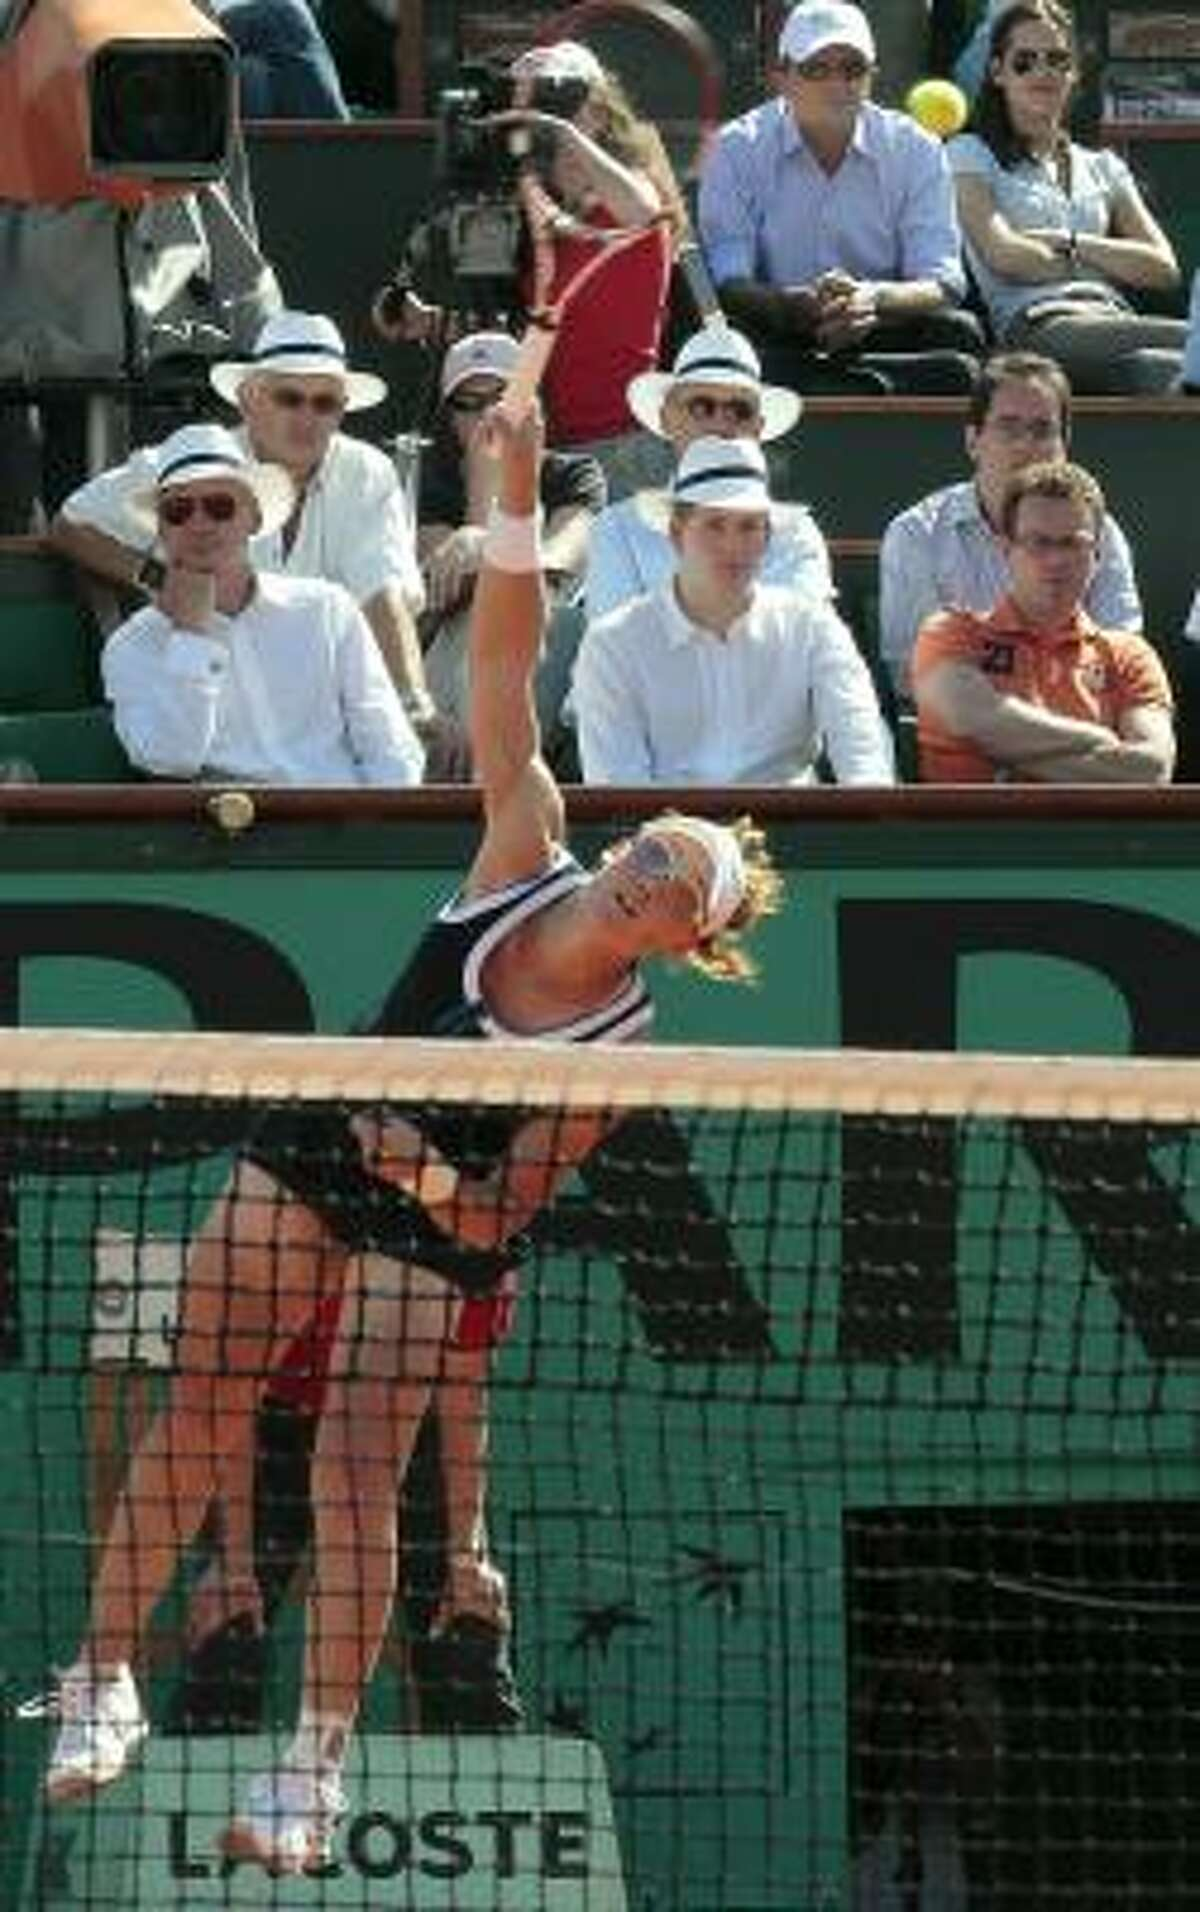 The No. 7-seeded Stosur won with the same big serve and booming forehand that helped her upset four-time French Open champion Justine Henin and 12-time Grand Slam winner Serena Williams this week.